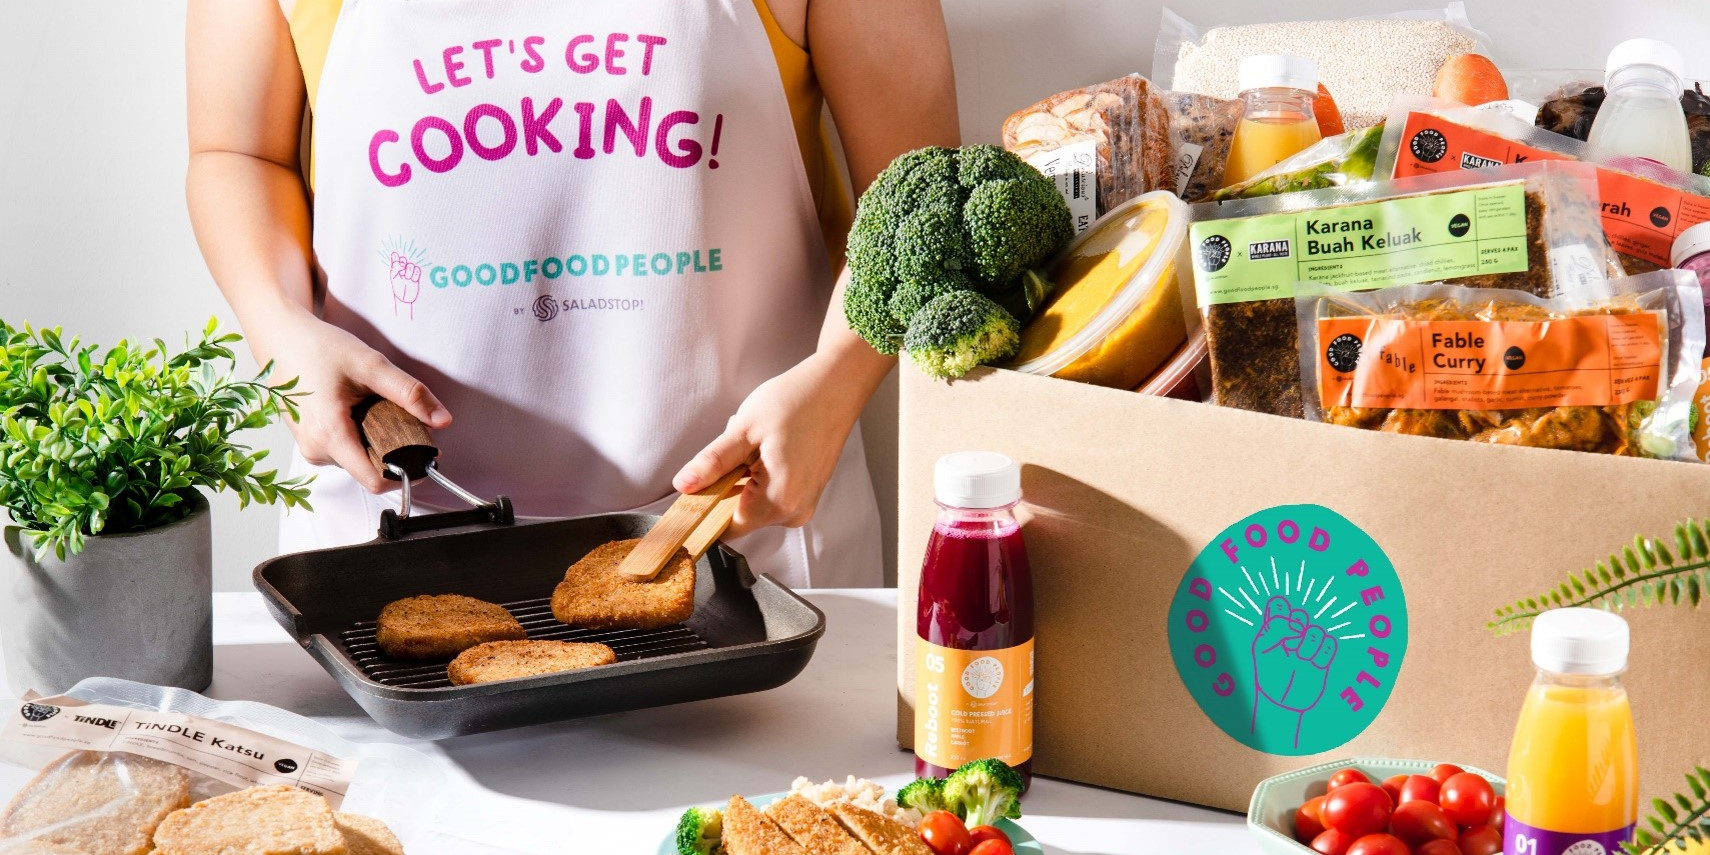 Enjoy up to 20% off special bundles from Good Food People on Deliveroo